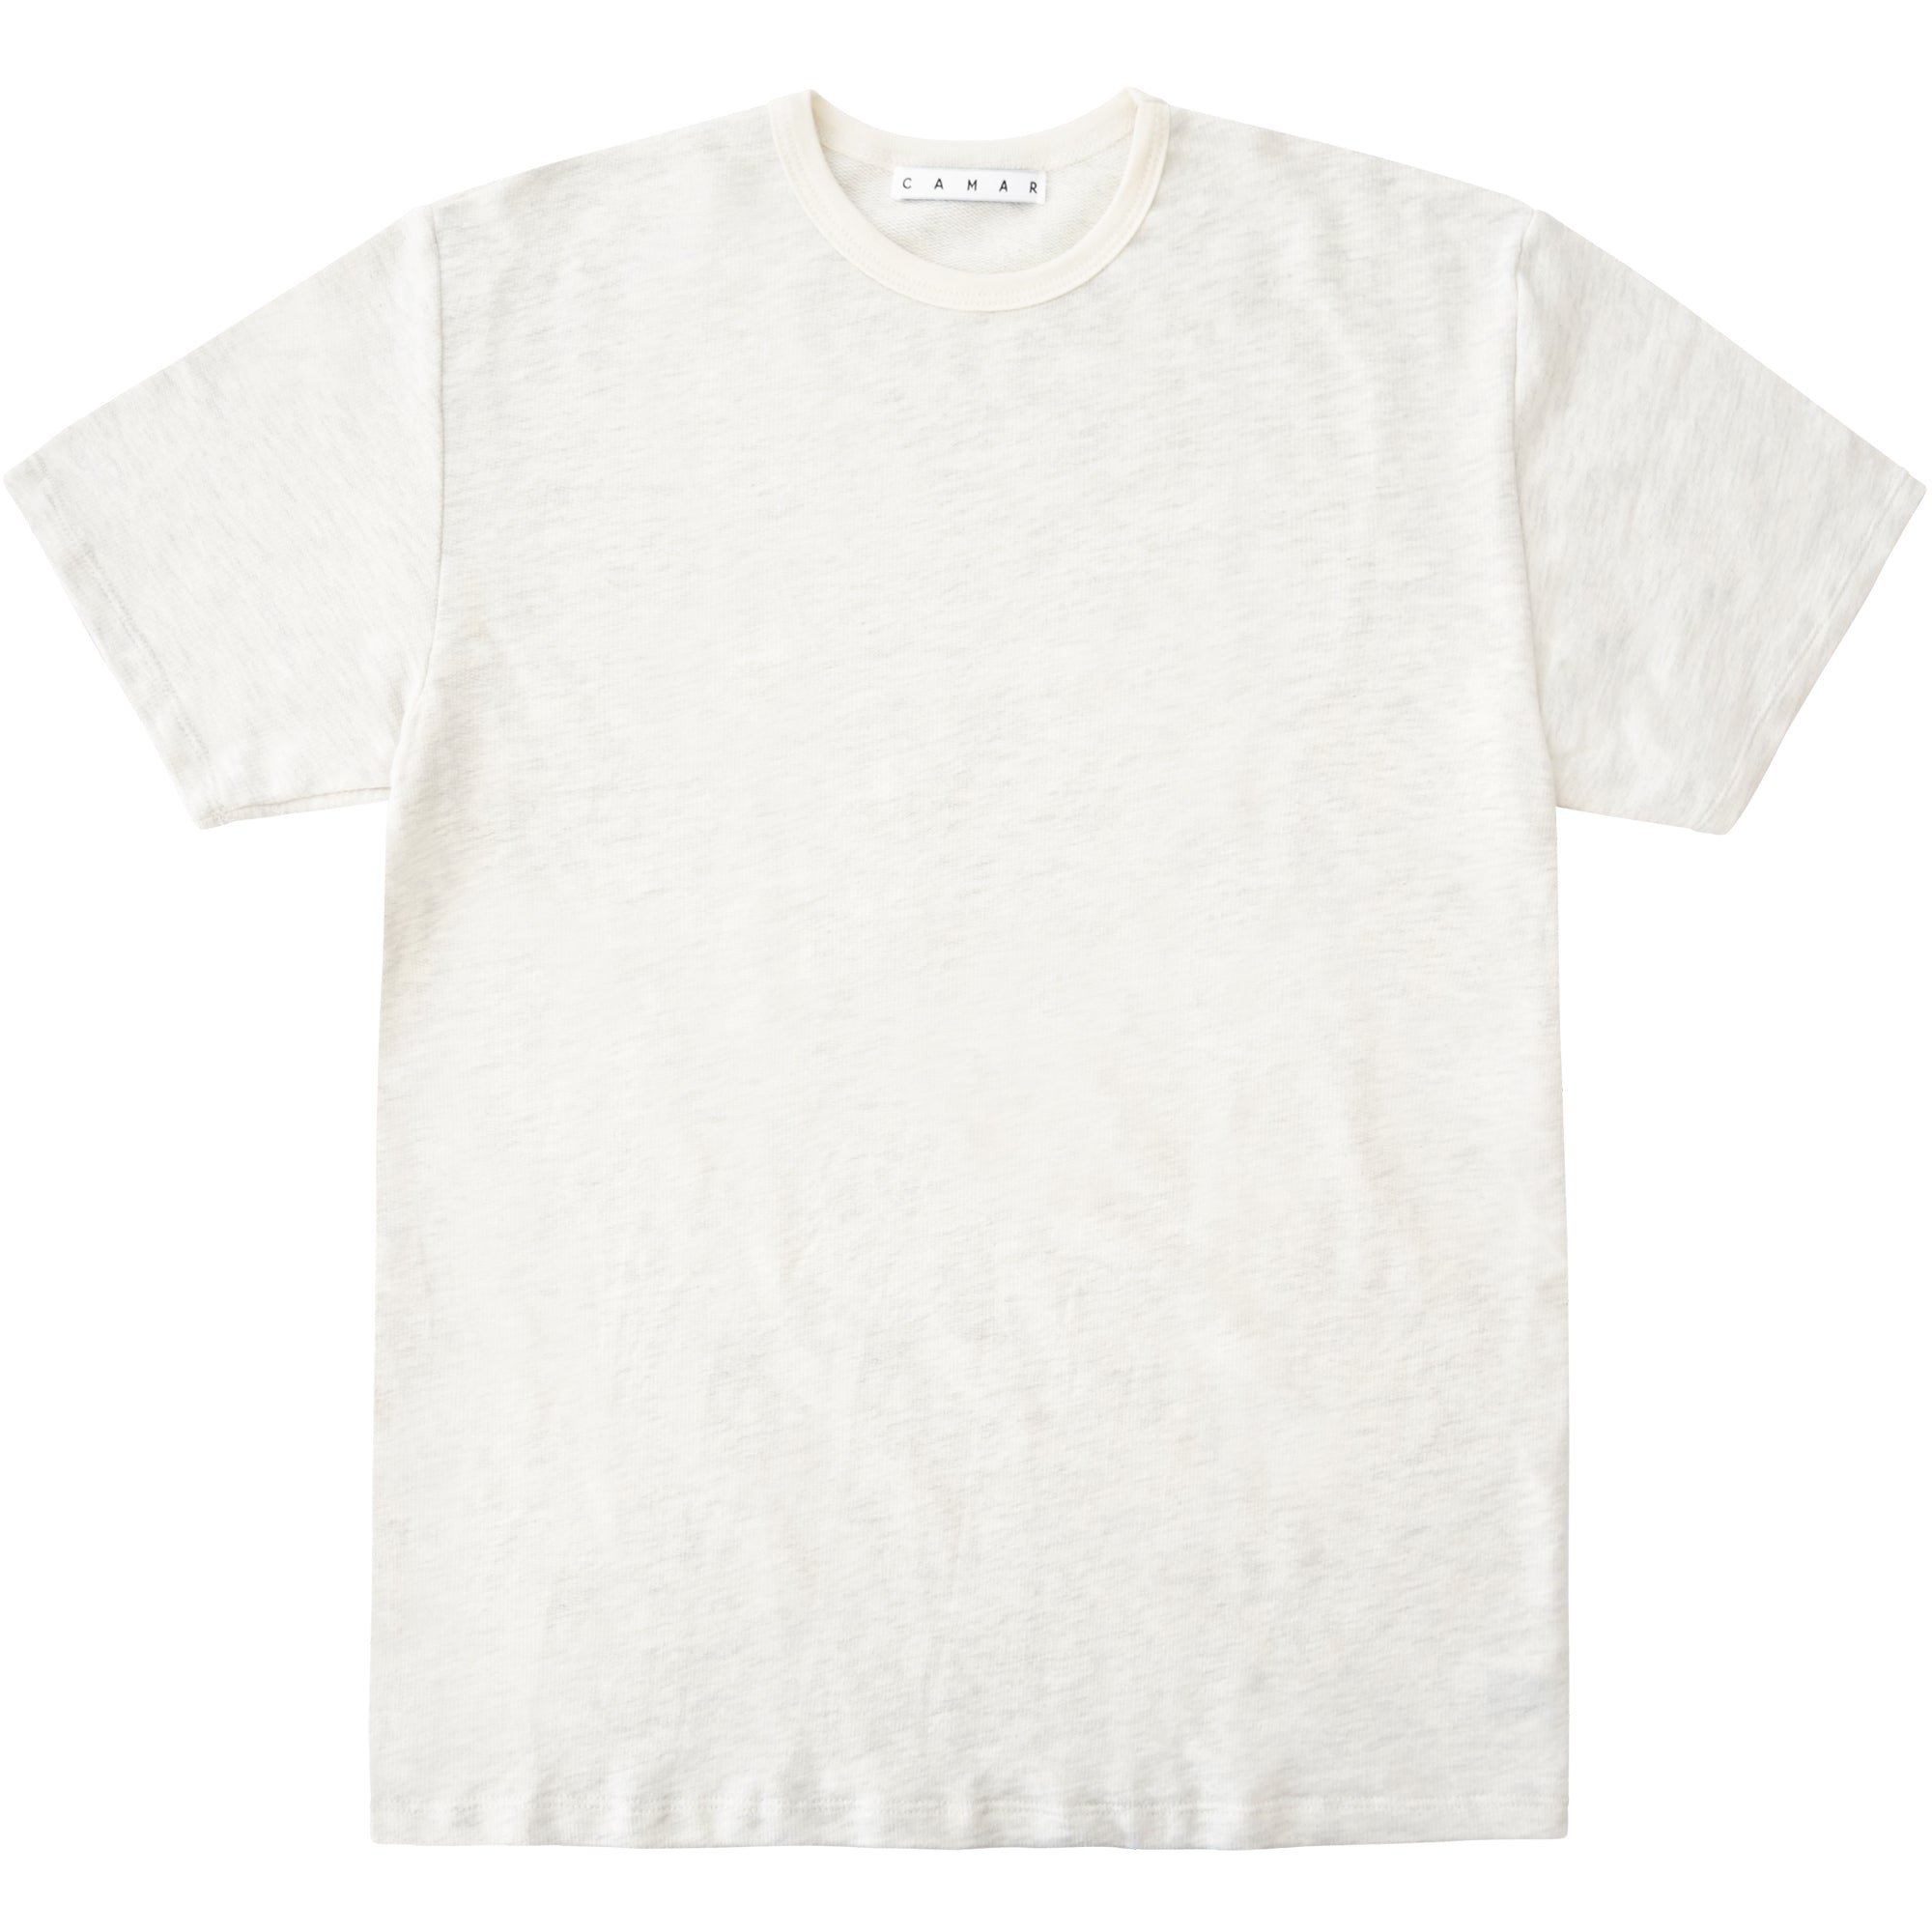 Bone White T-shirt